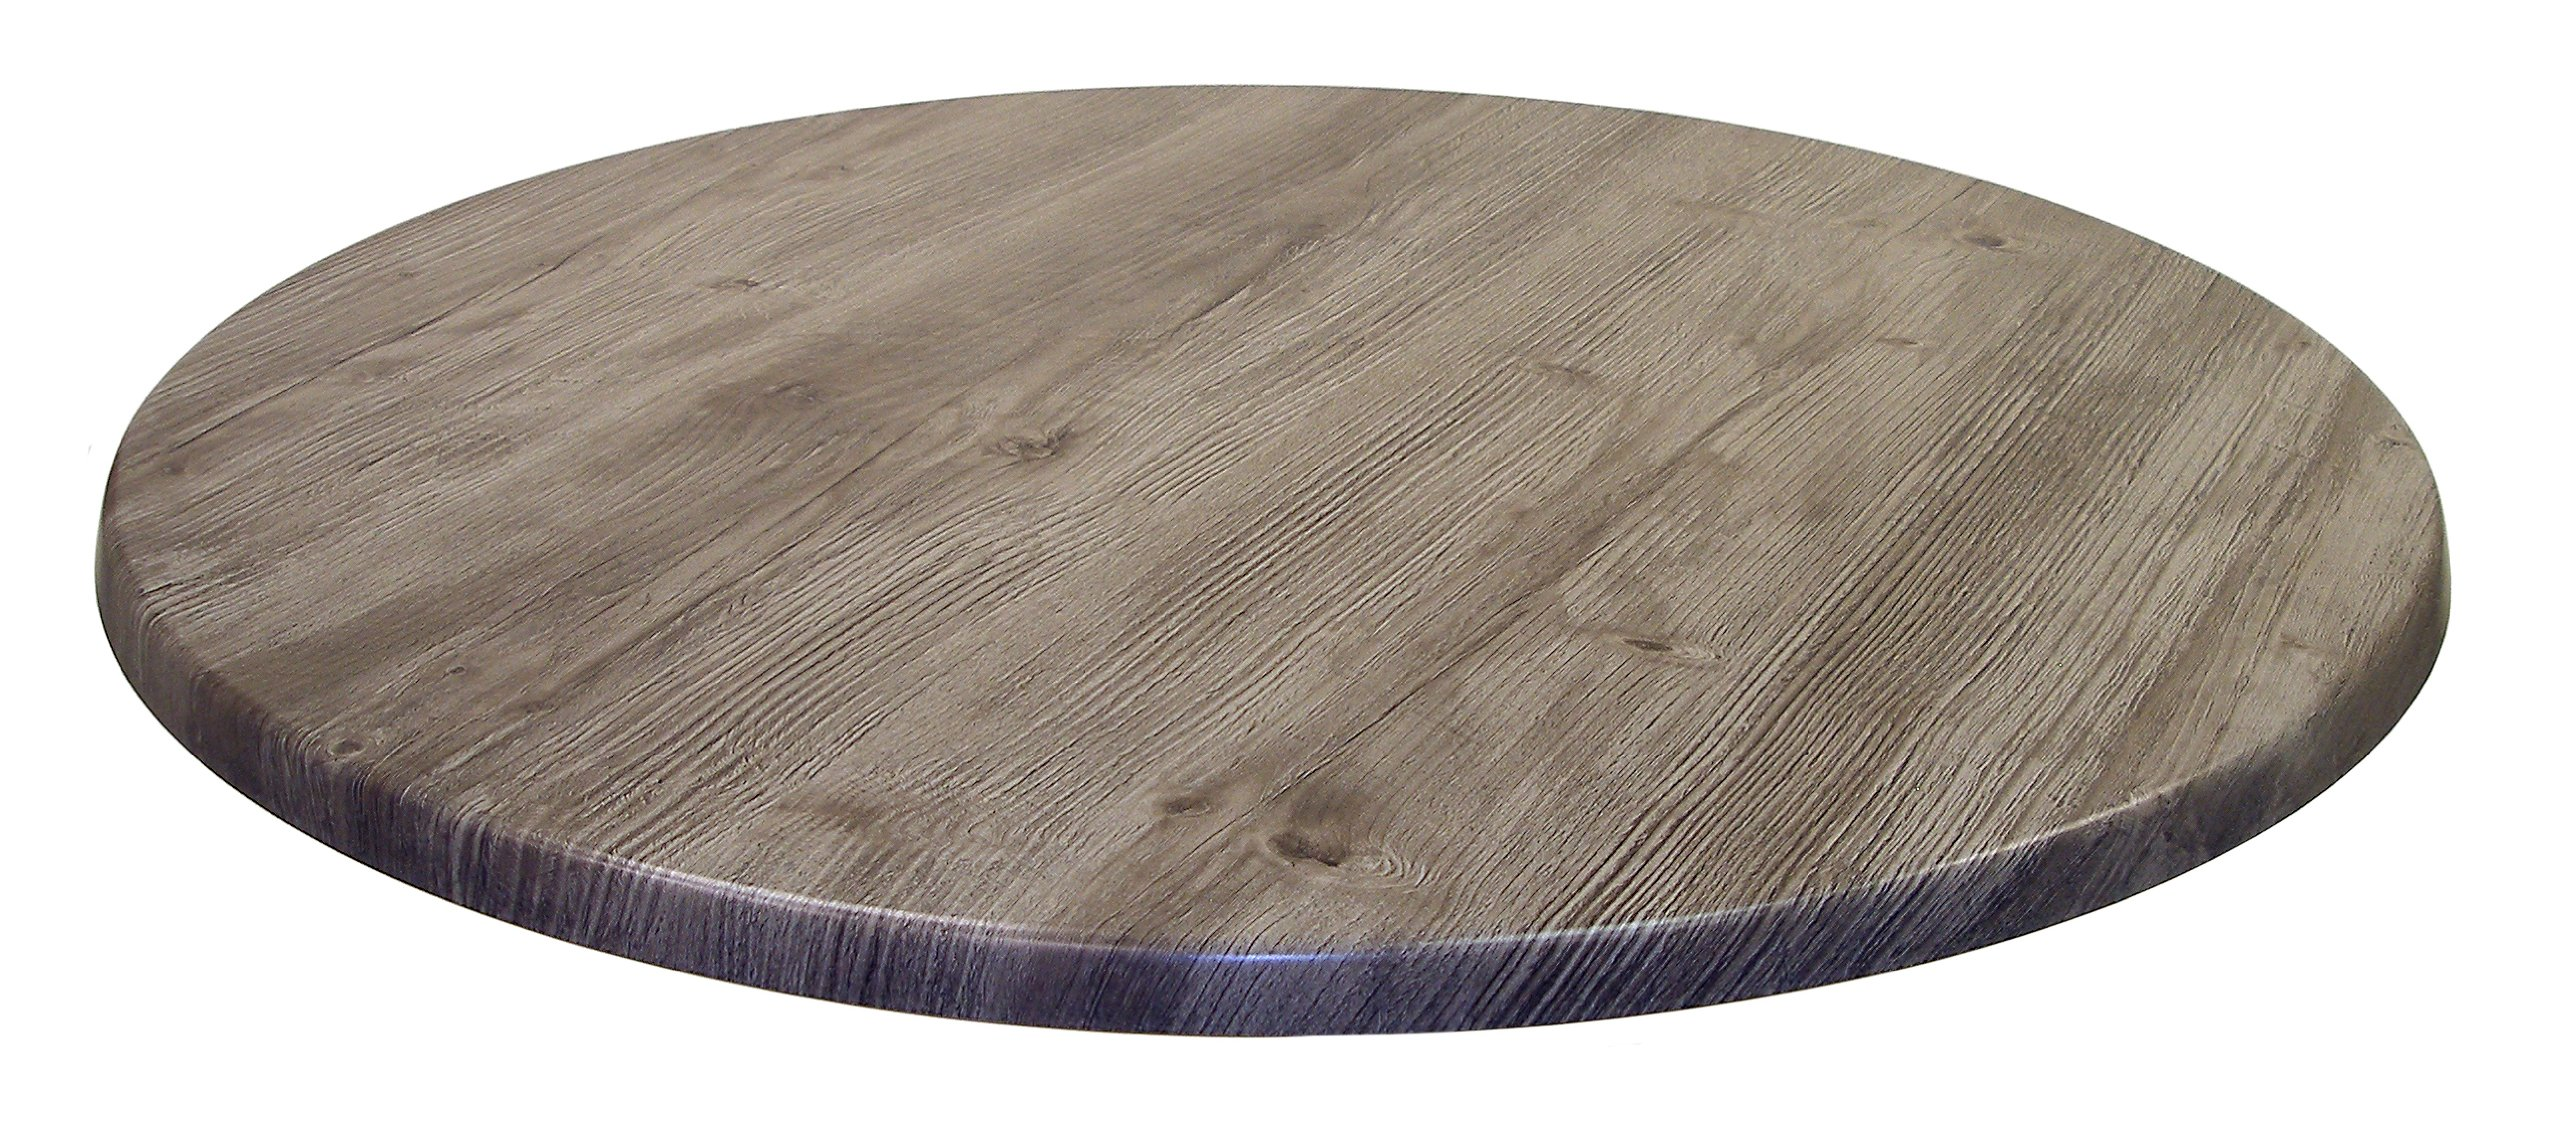 ATC Werzalit Wood-Look All-Weather Table Top, 42'' D, Ponderosa Grey